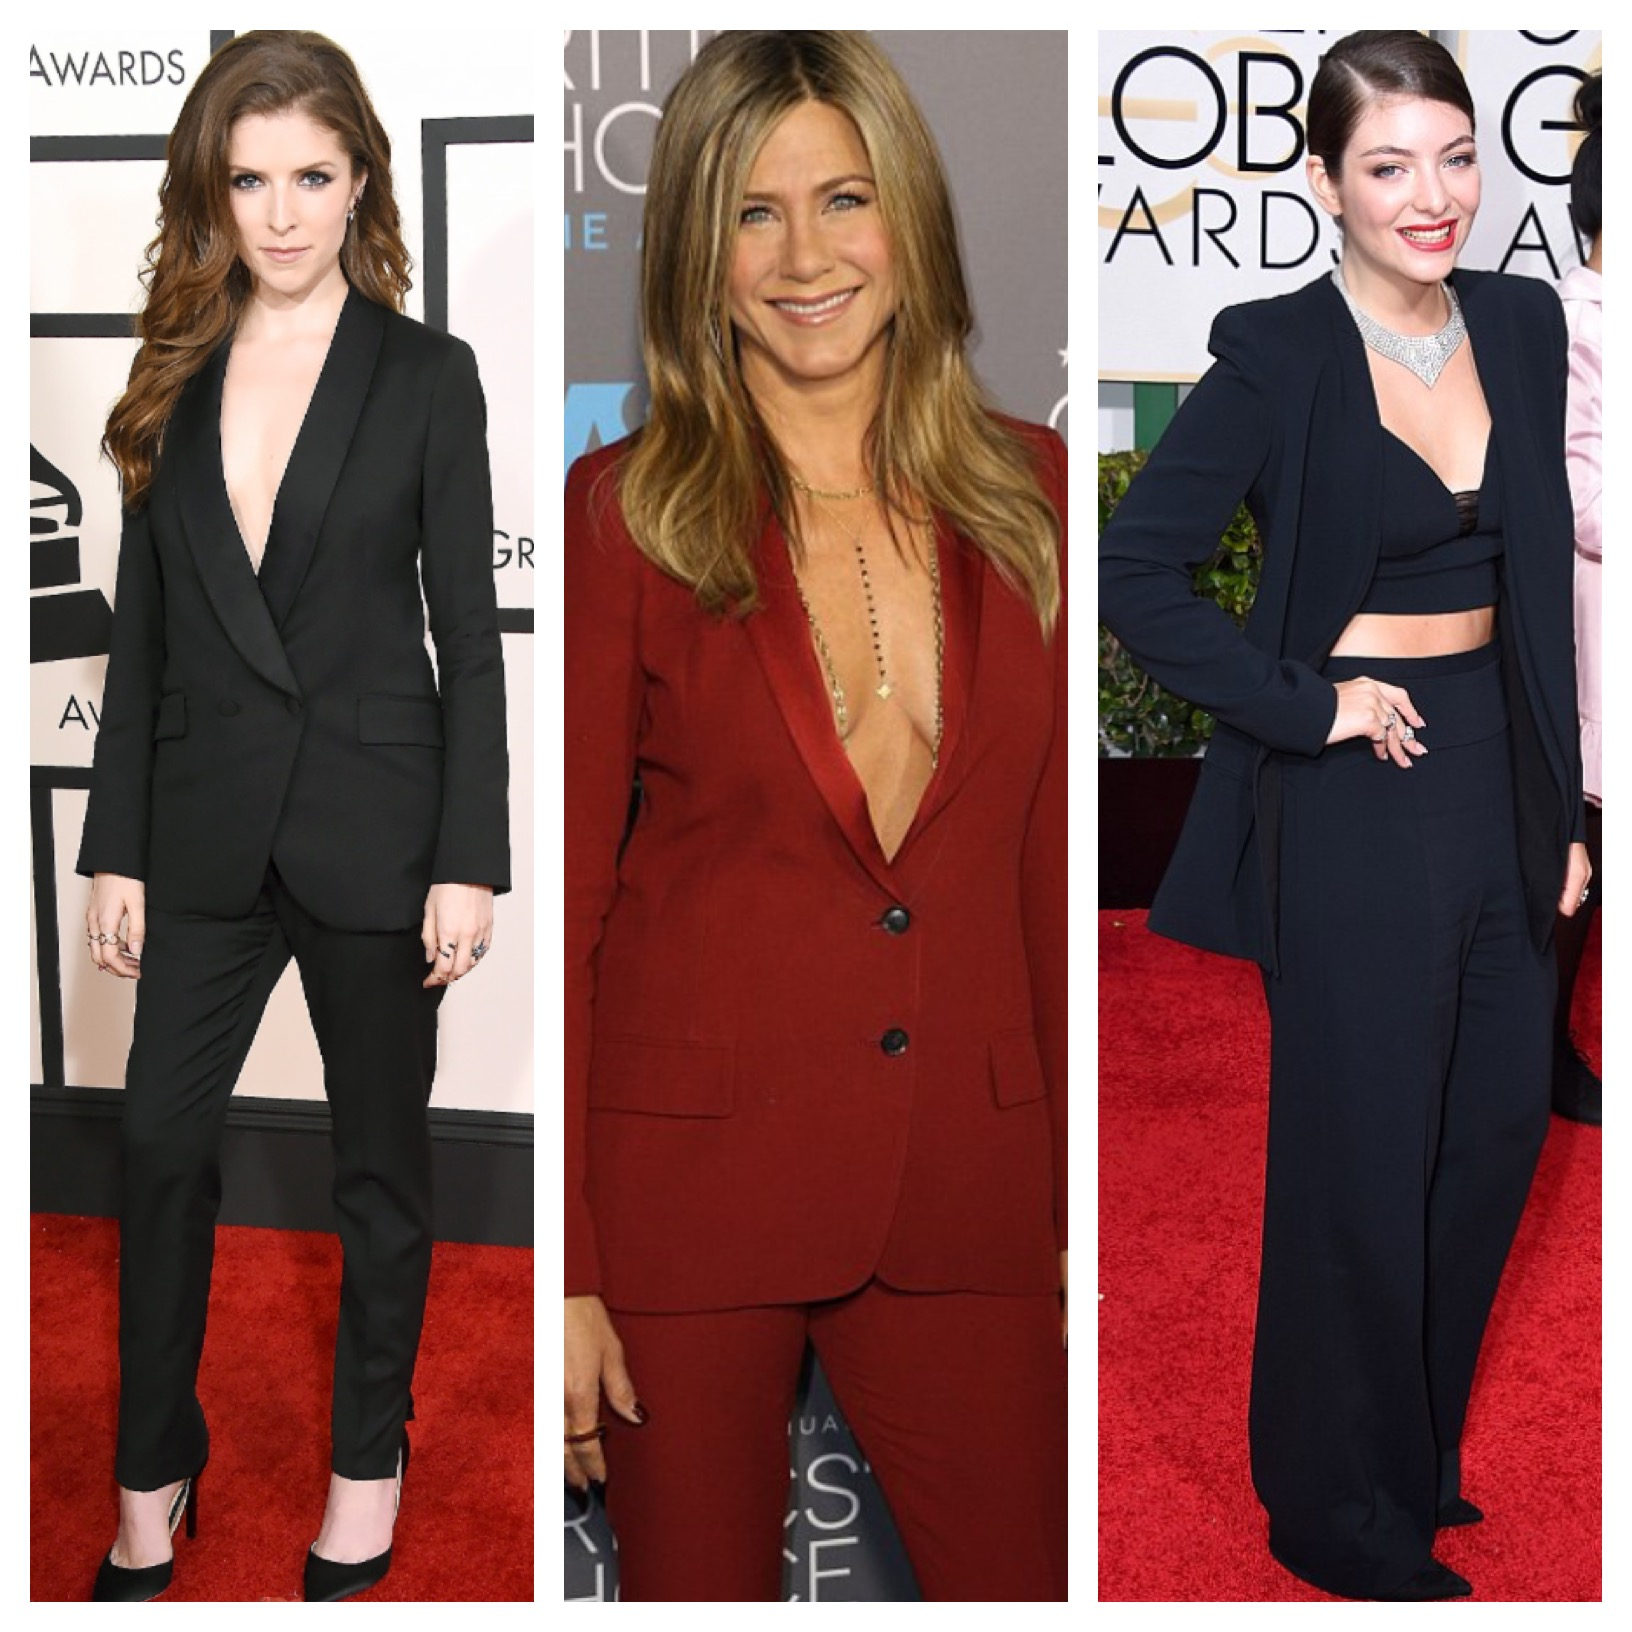 Raquel Greer Gordian displays red carpet looks that incorporated the menswear trend.